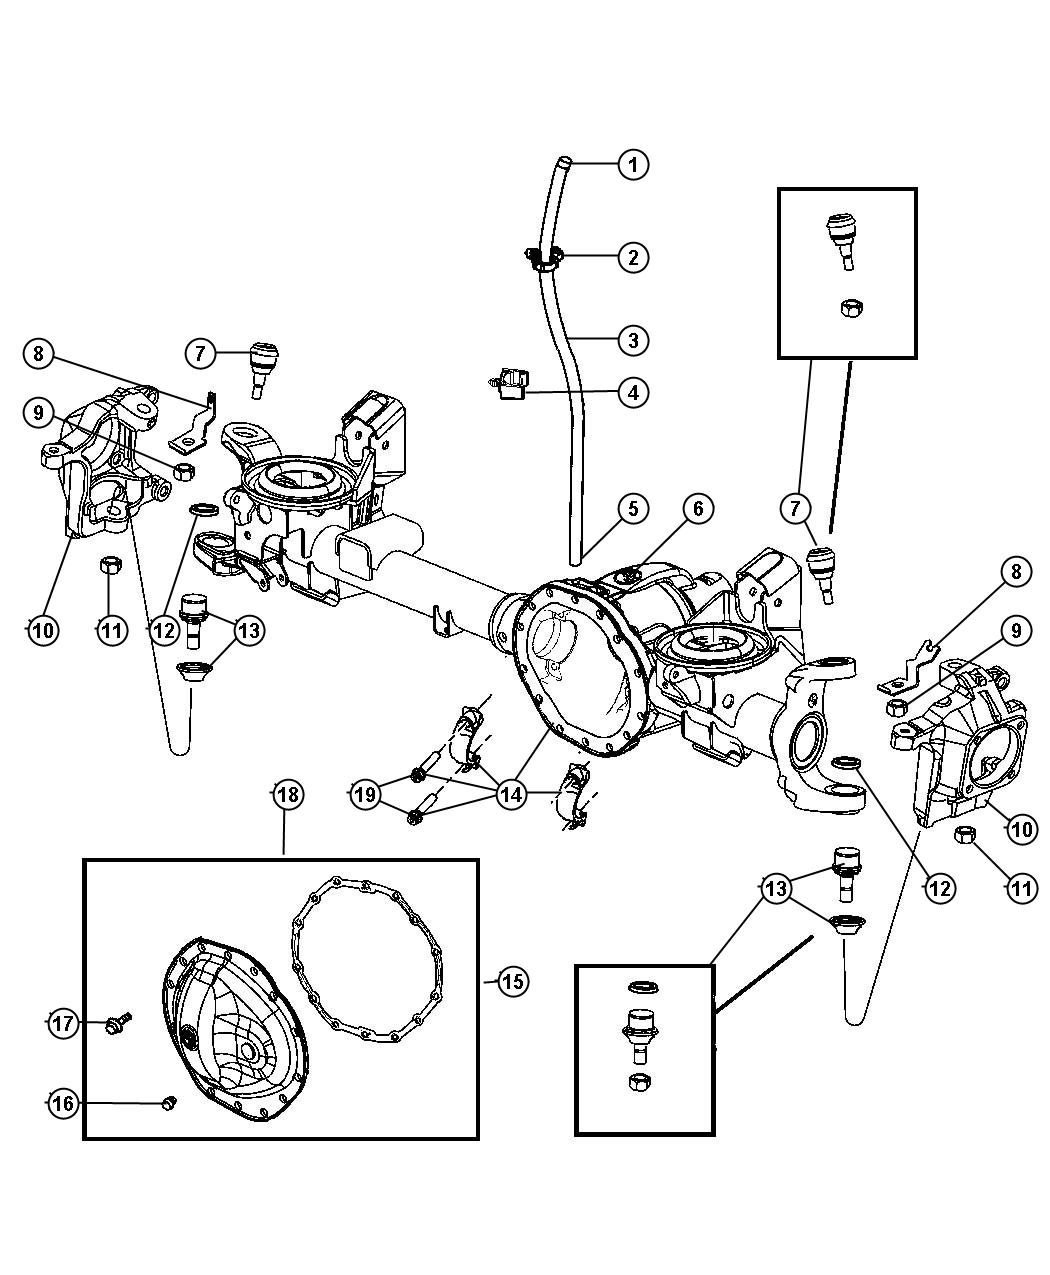 2000 ford excursion wiring diagram seat